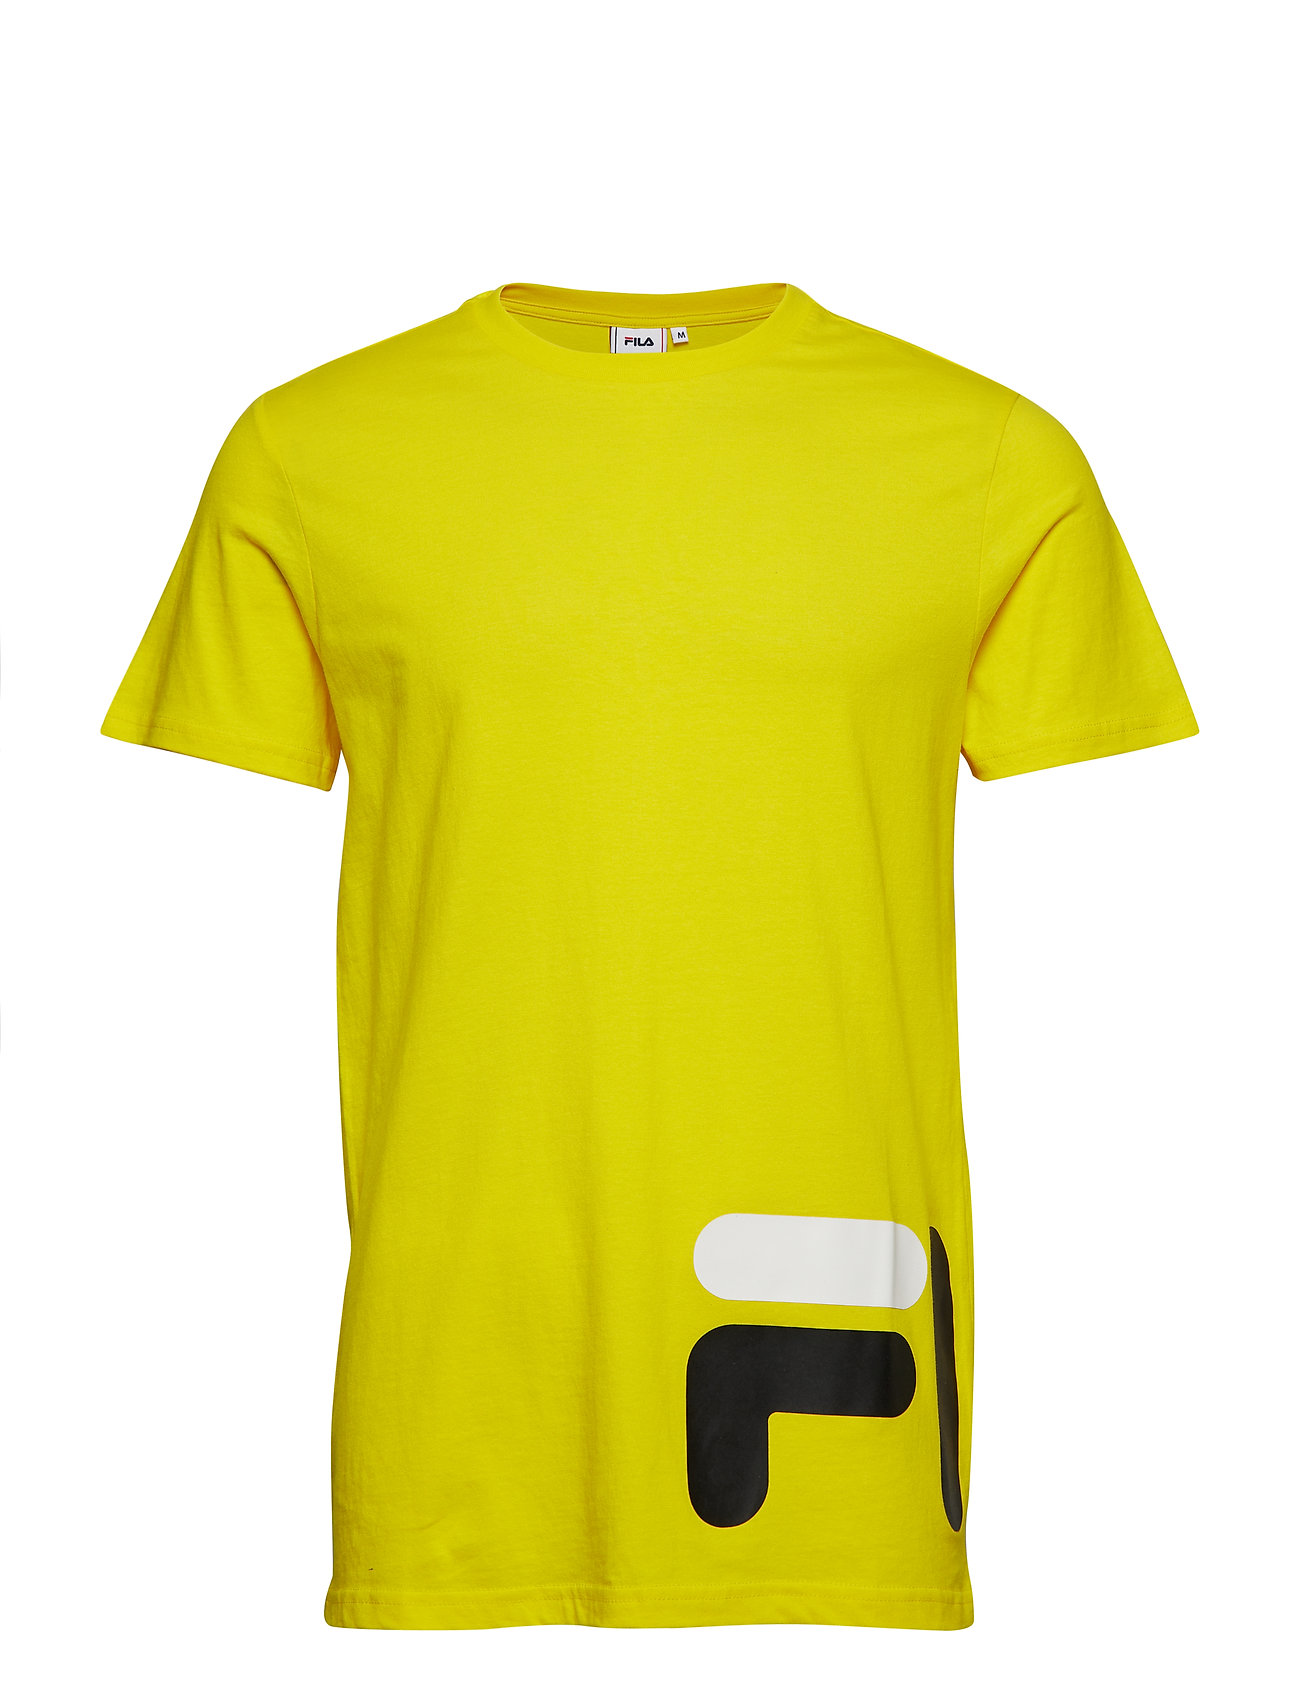 FILA EAMON ss tee - EMPIRE YELLOW